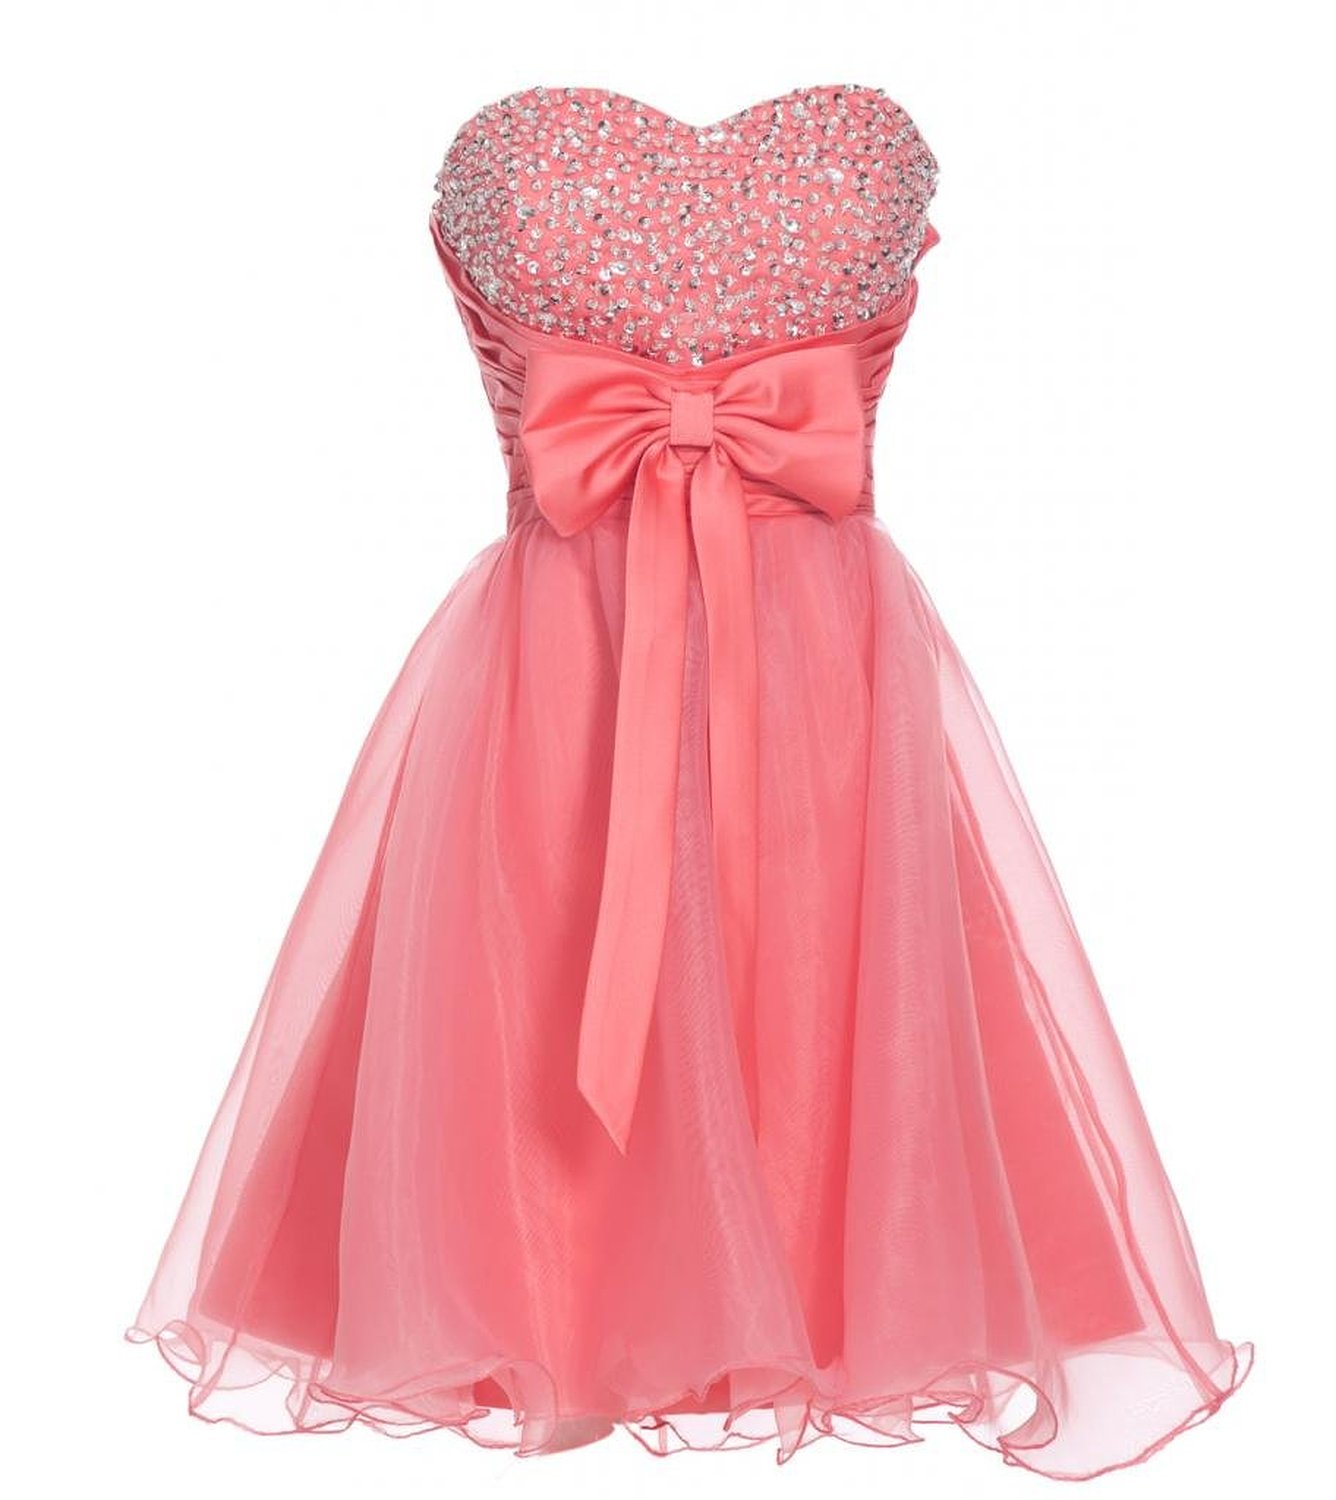 Line short party prom dresses at amazon women's clothing store: